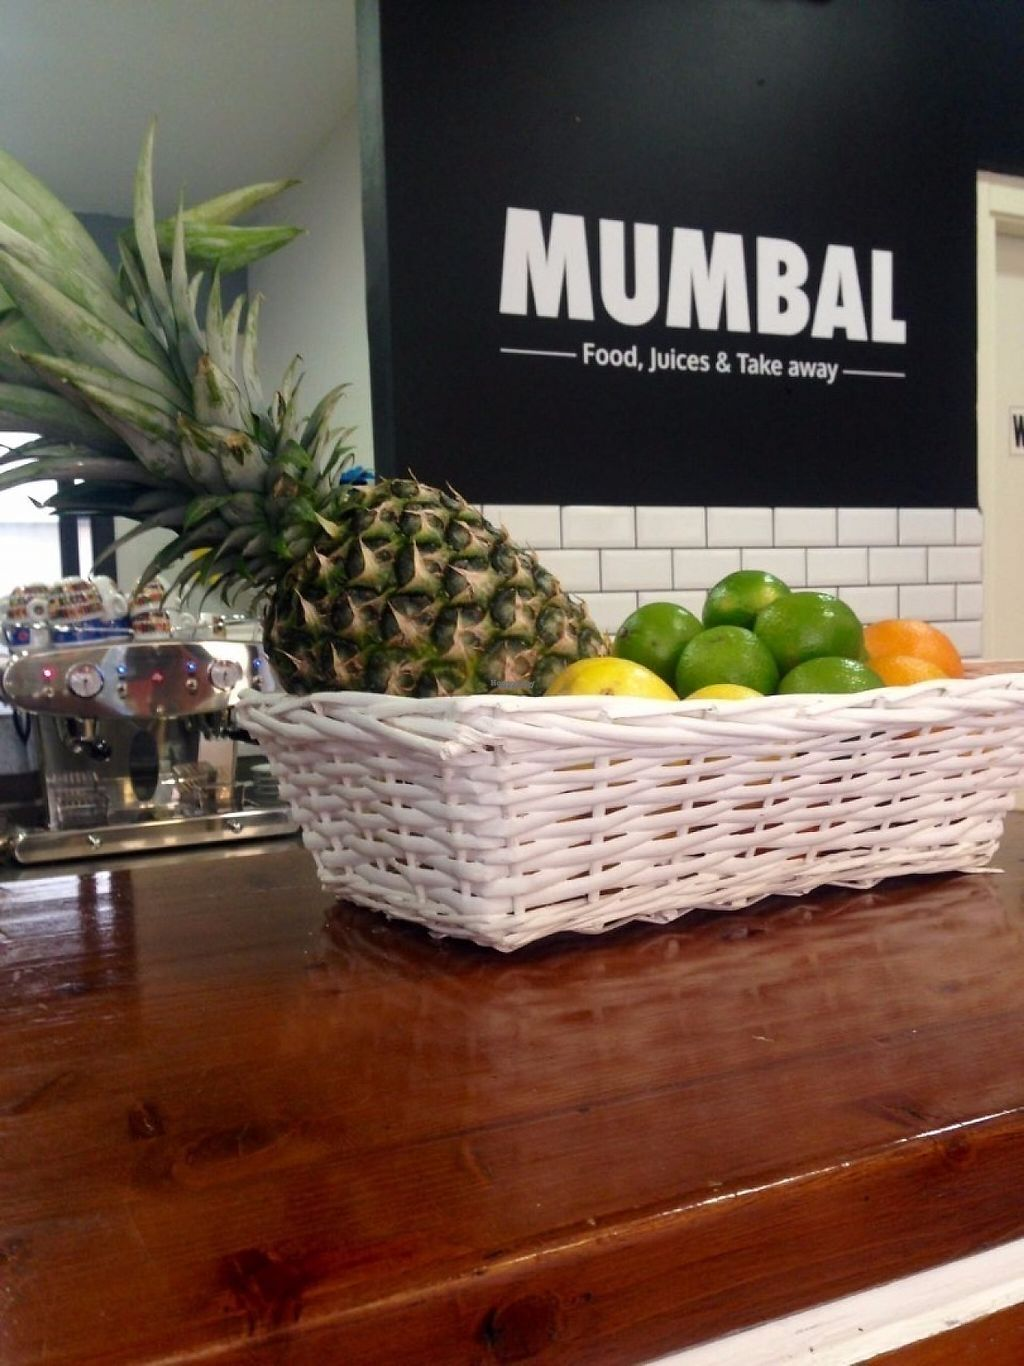 """Photo of Mumbal  by <a href=""""/members/profile/LaraHiork"""">LaraHiork</a> <br/>Vegan place at sant cugat, gluten free options <br/> March 27, 2017  - <a href='/contact/abuse/image/89250/241719'>Report</a>"""